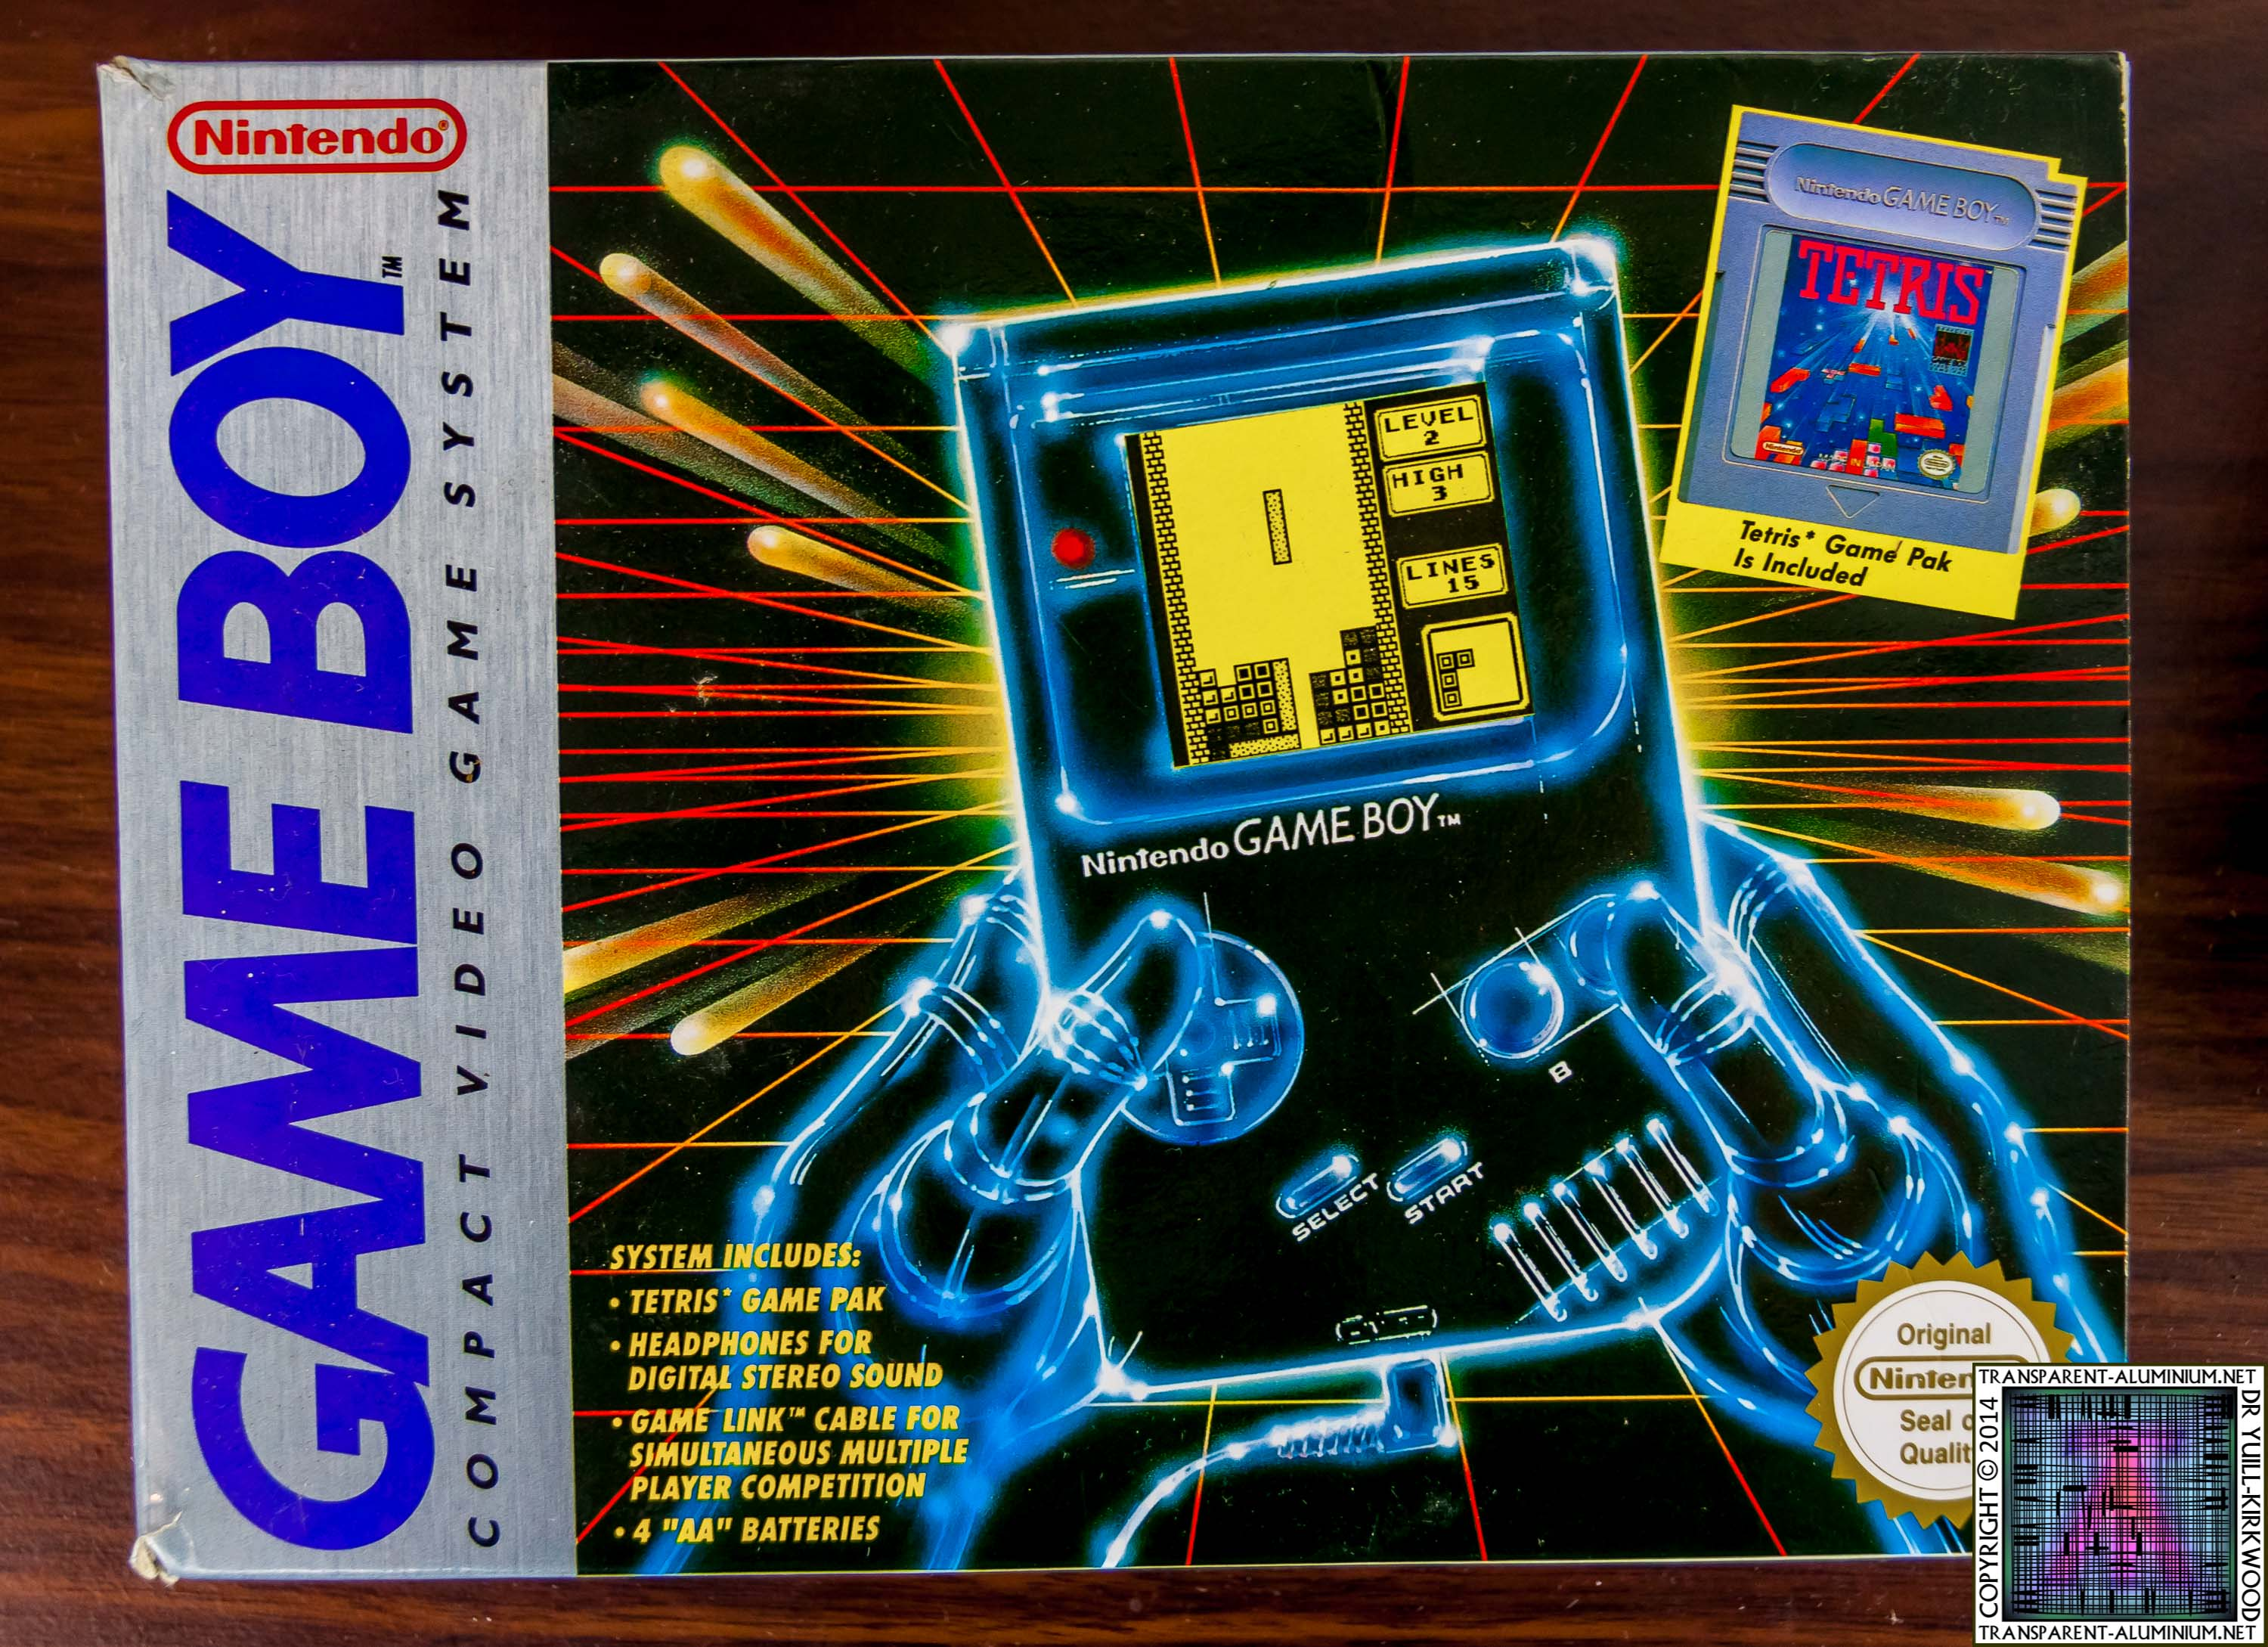 Game-Boy-Original-Box-1.jpg